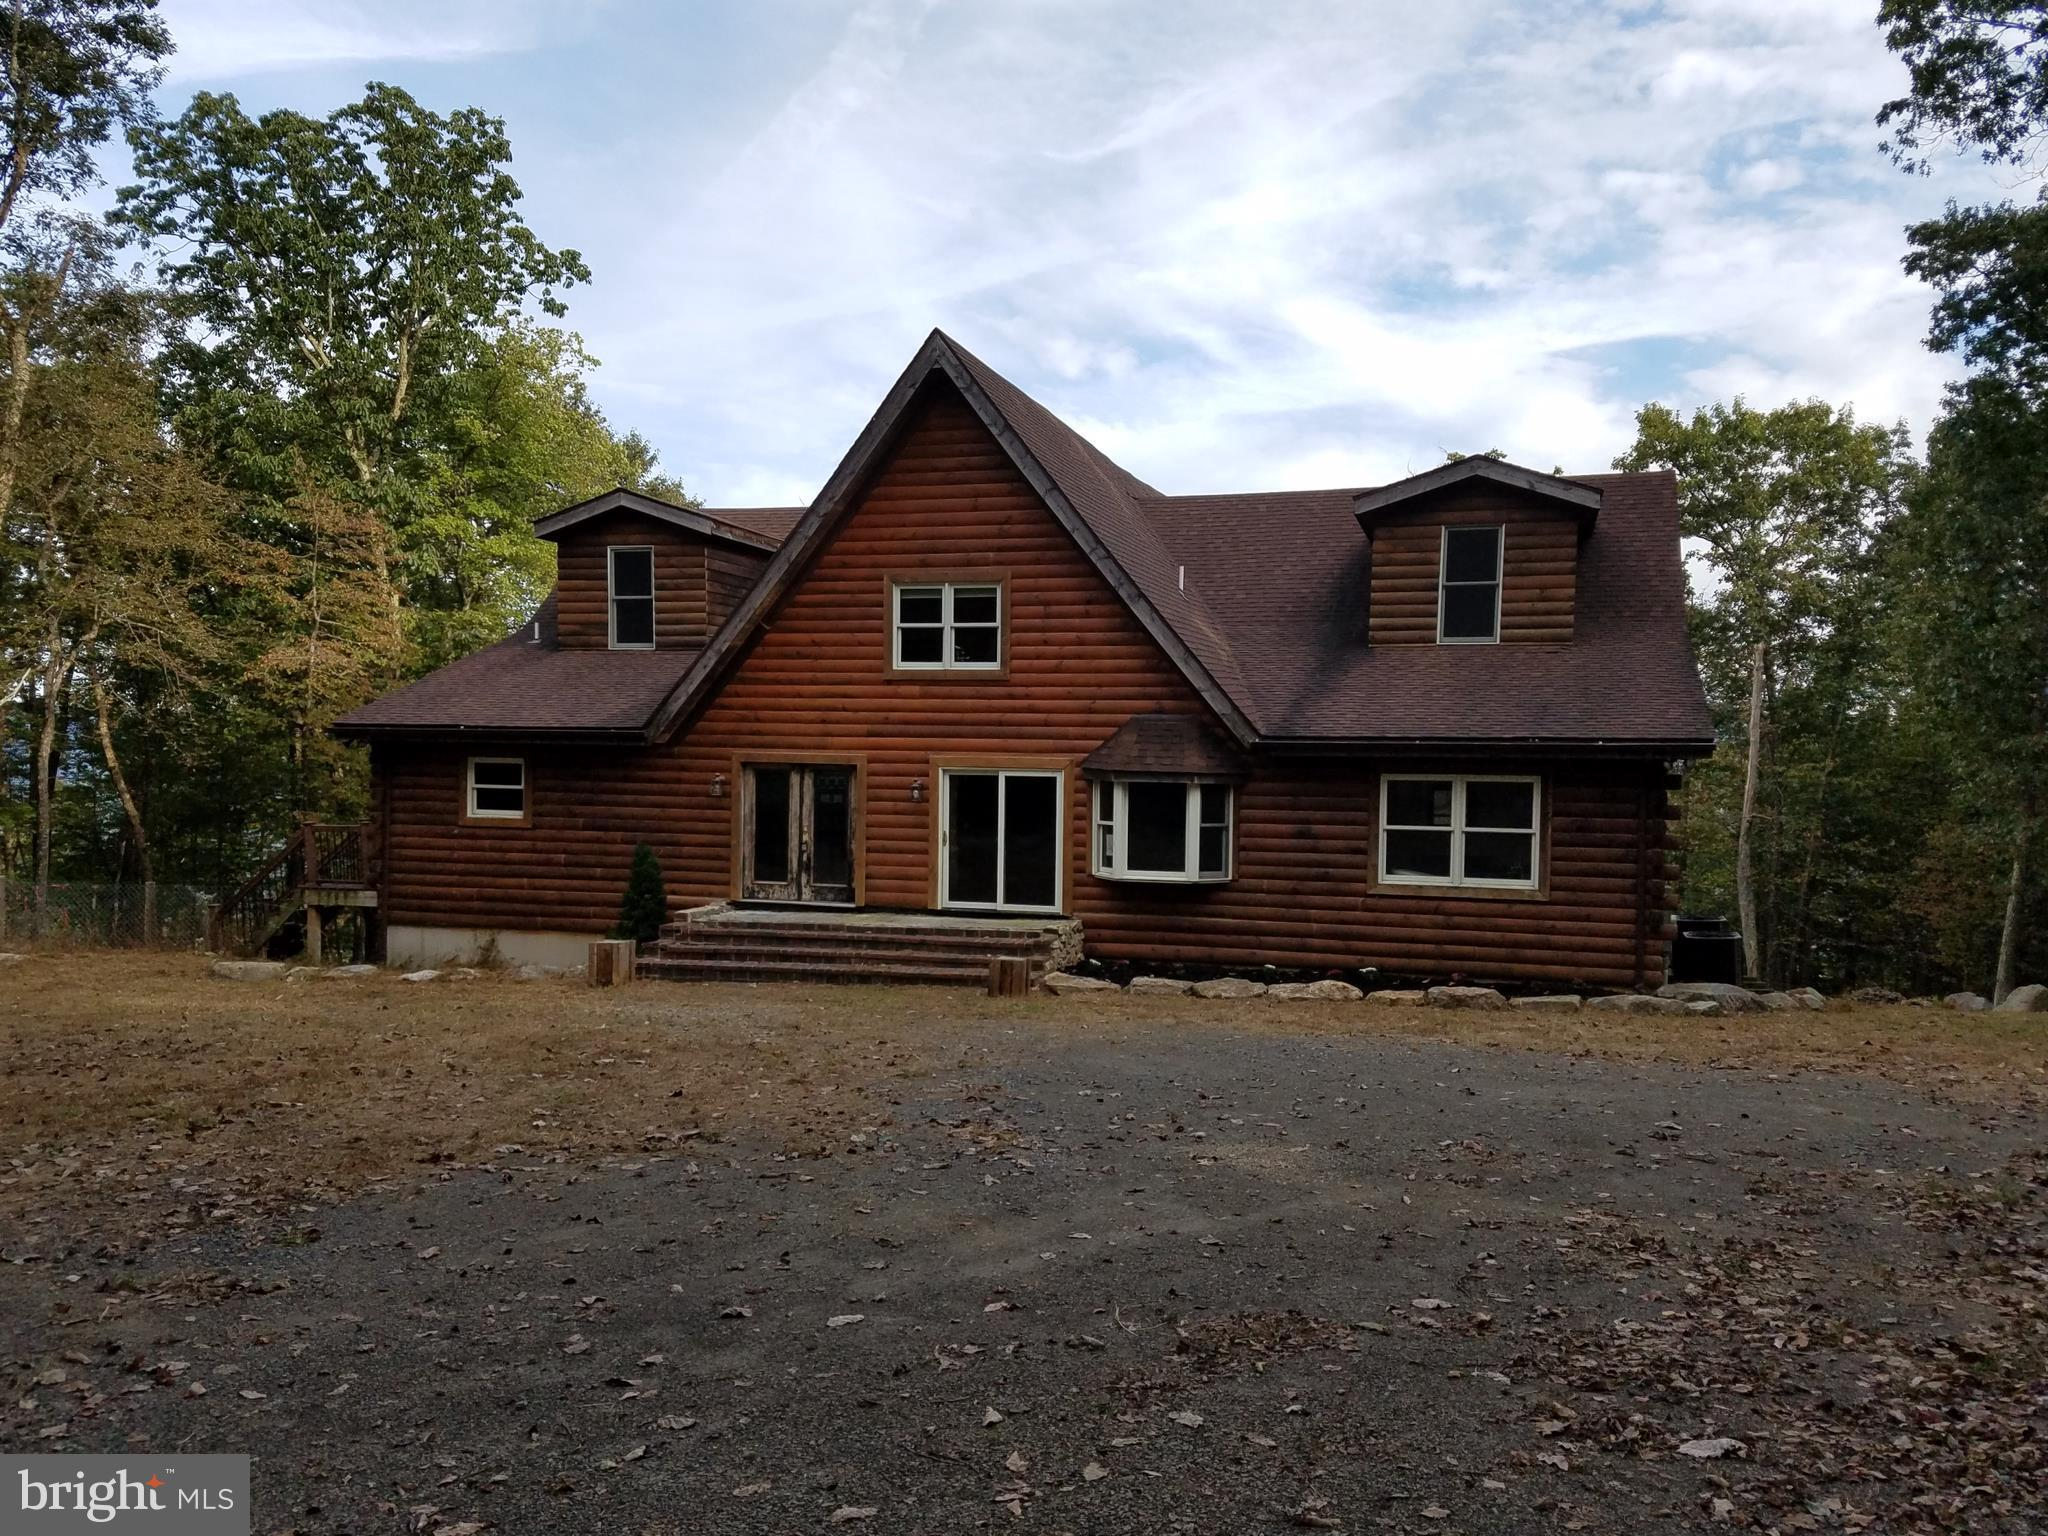 PRIVATE MT TOP RETREAT..surrounded by 64 acres with a 4000 sq ft log home, spacious great rm w/cathedral ceilings, maple kitchen cabinets, custom island/bar, spacious master bath w/claw foot tub, double sinks, huge deck for entertaining, mud/pet room, full walkout basement, 40x24 shop.